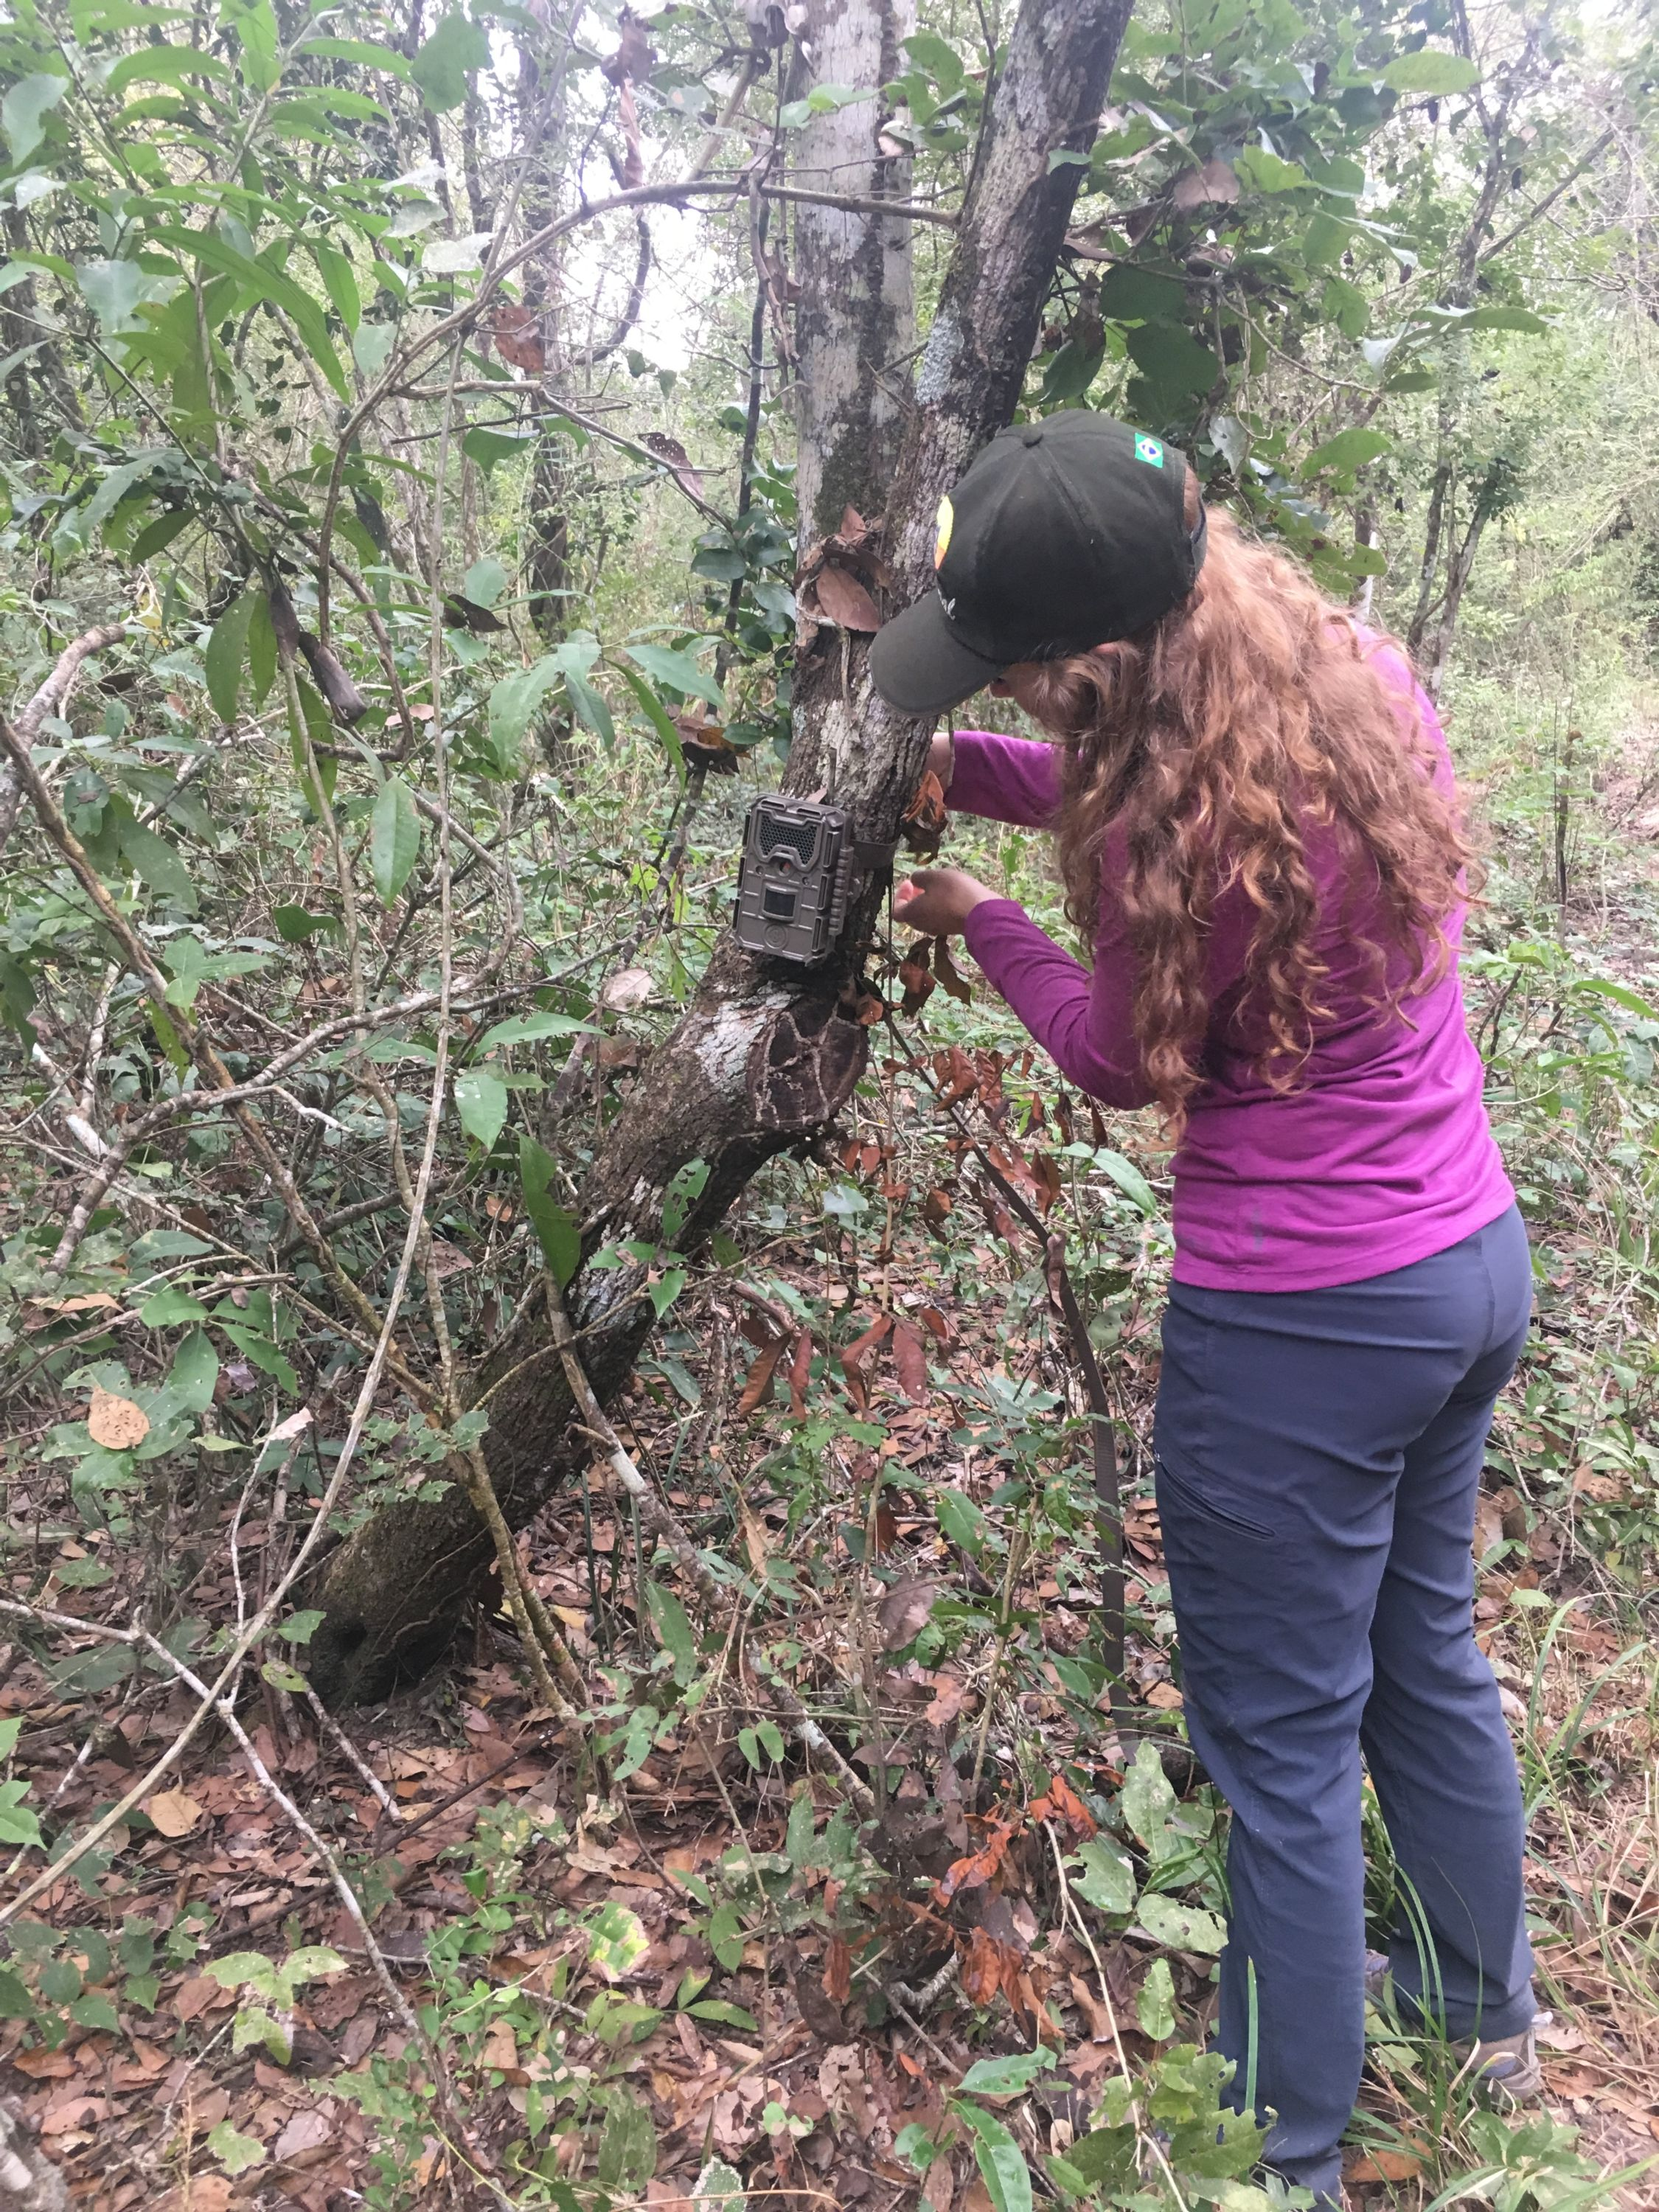 Lauren checking a camera trap.